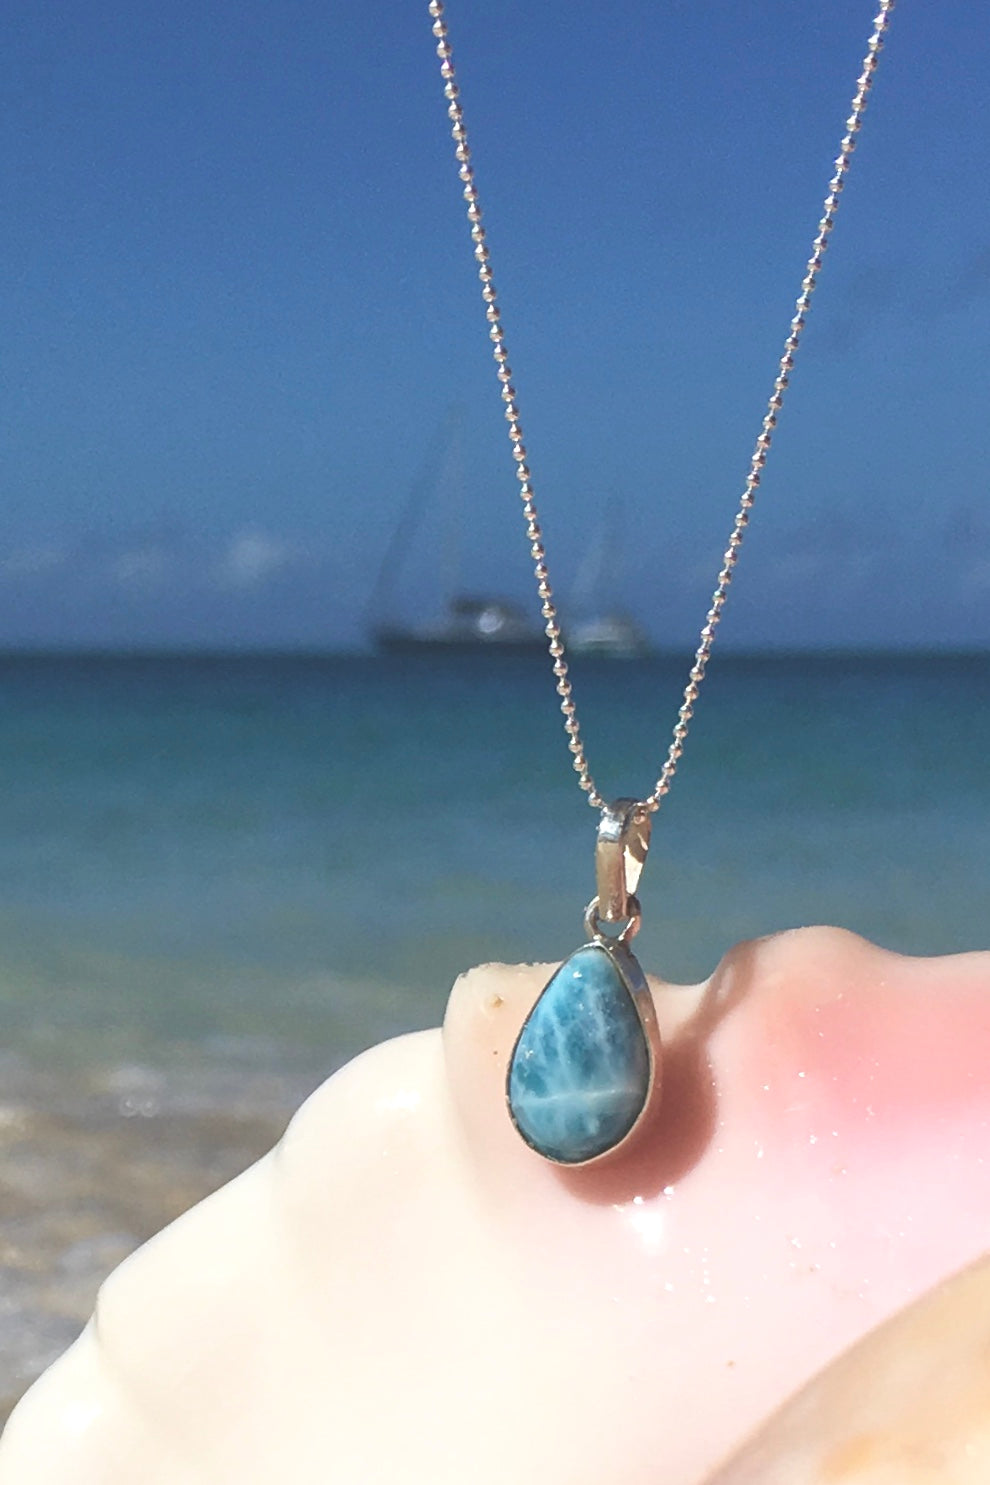 Pendant Larimar Blue Pebble on a silver chain, gemstone necklace in soft blue colour.